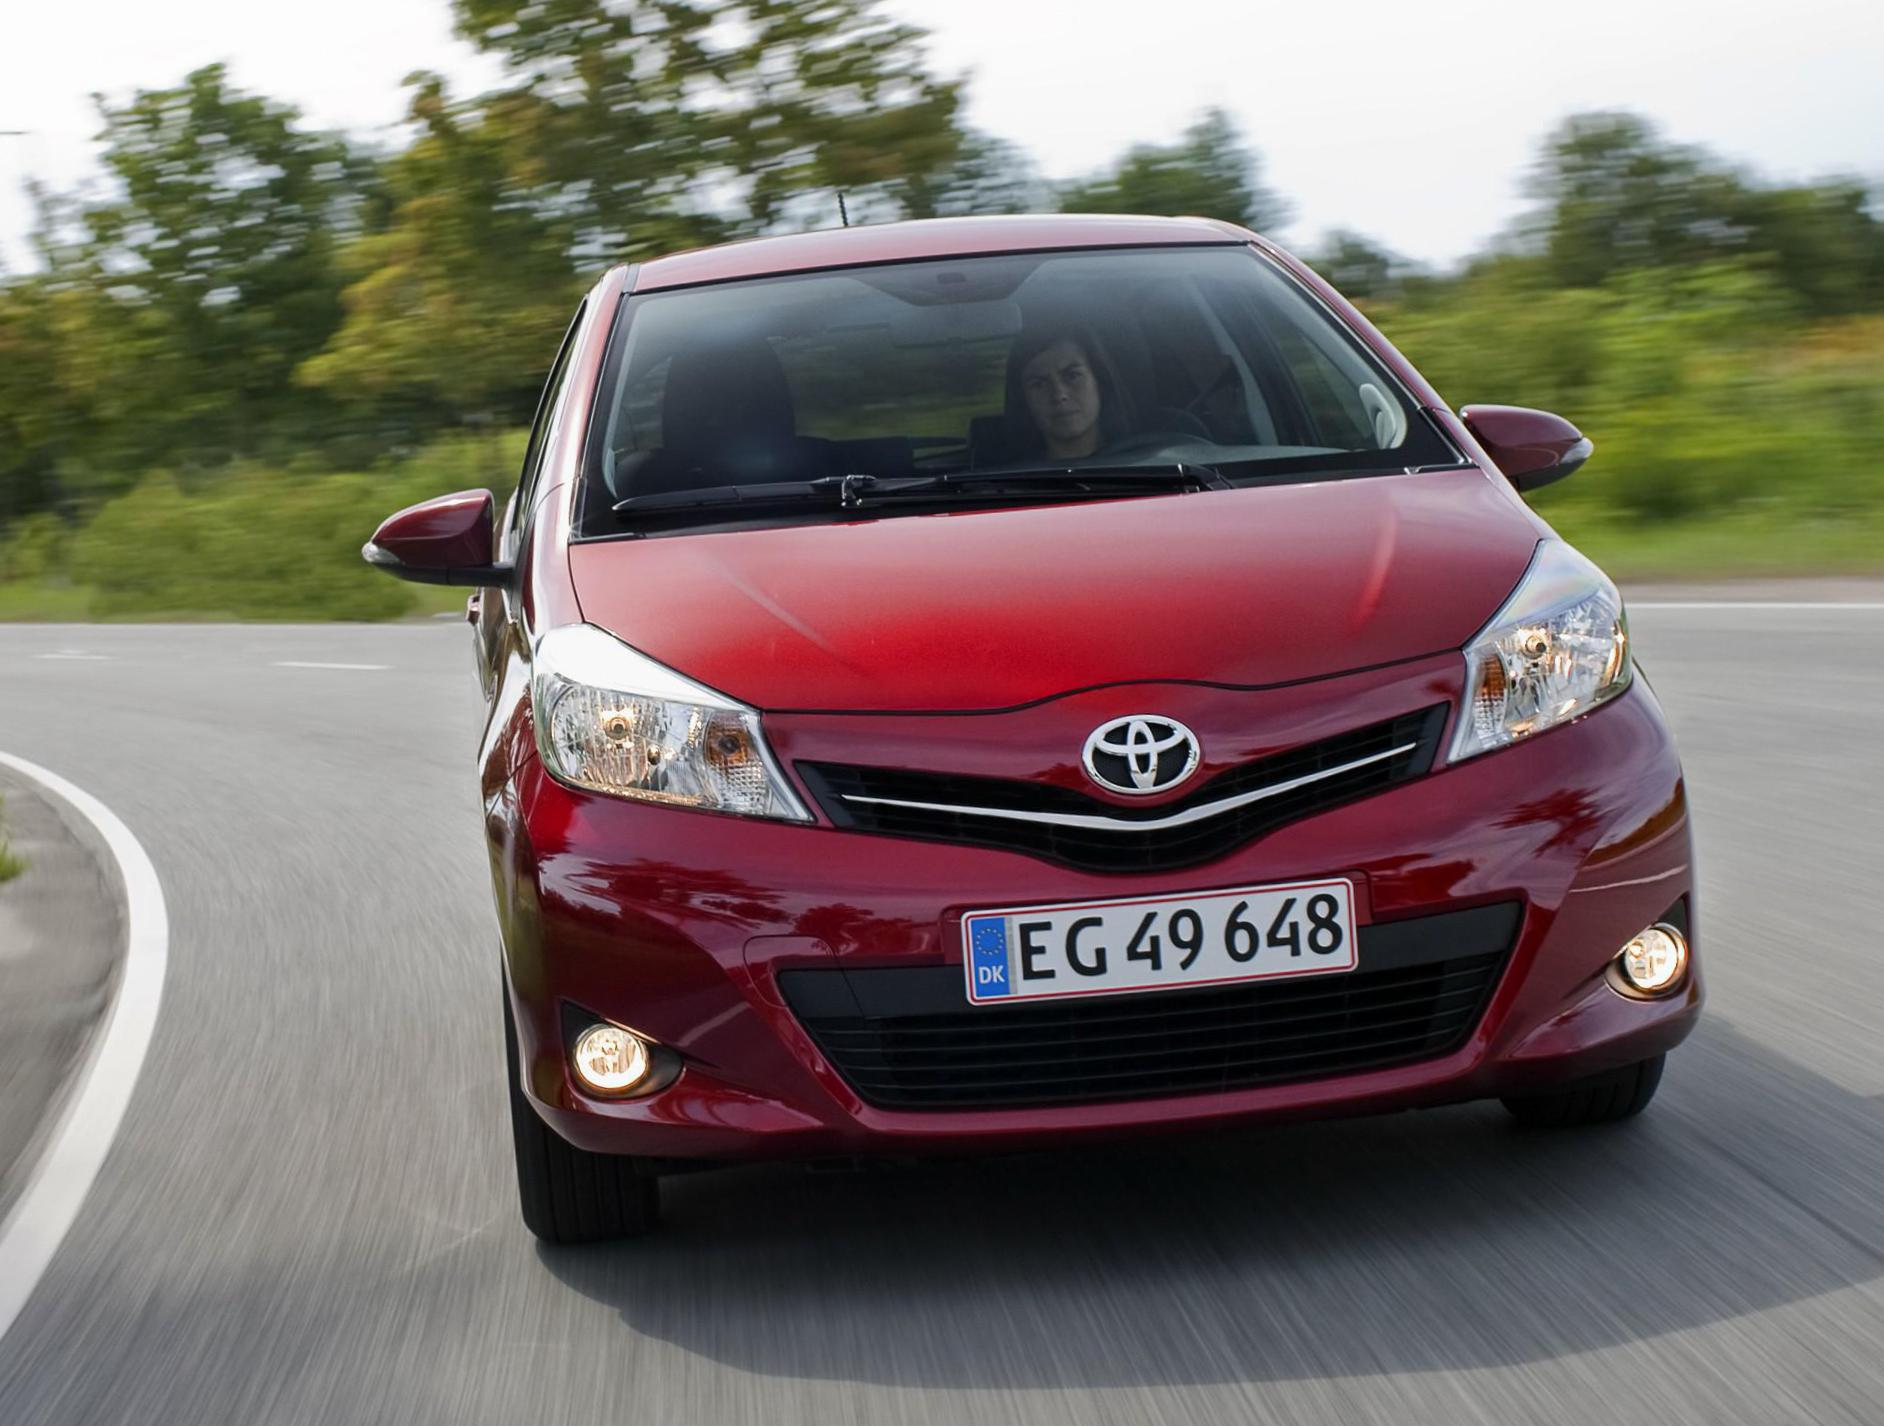 Toyota Yaris 5 doors new coupe